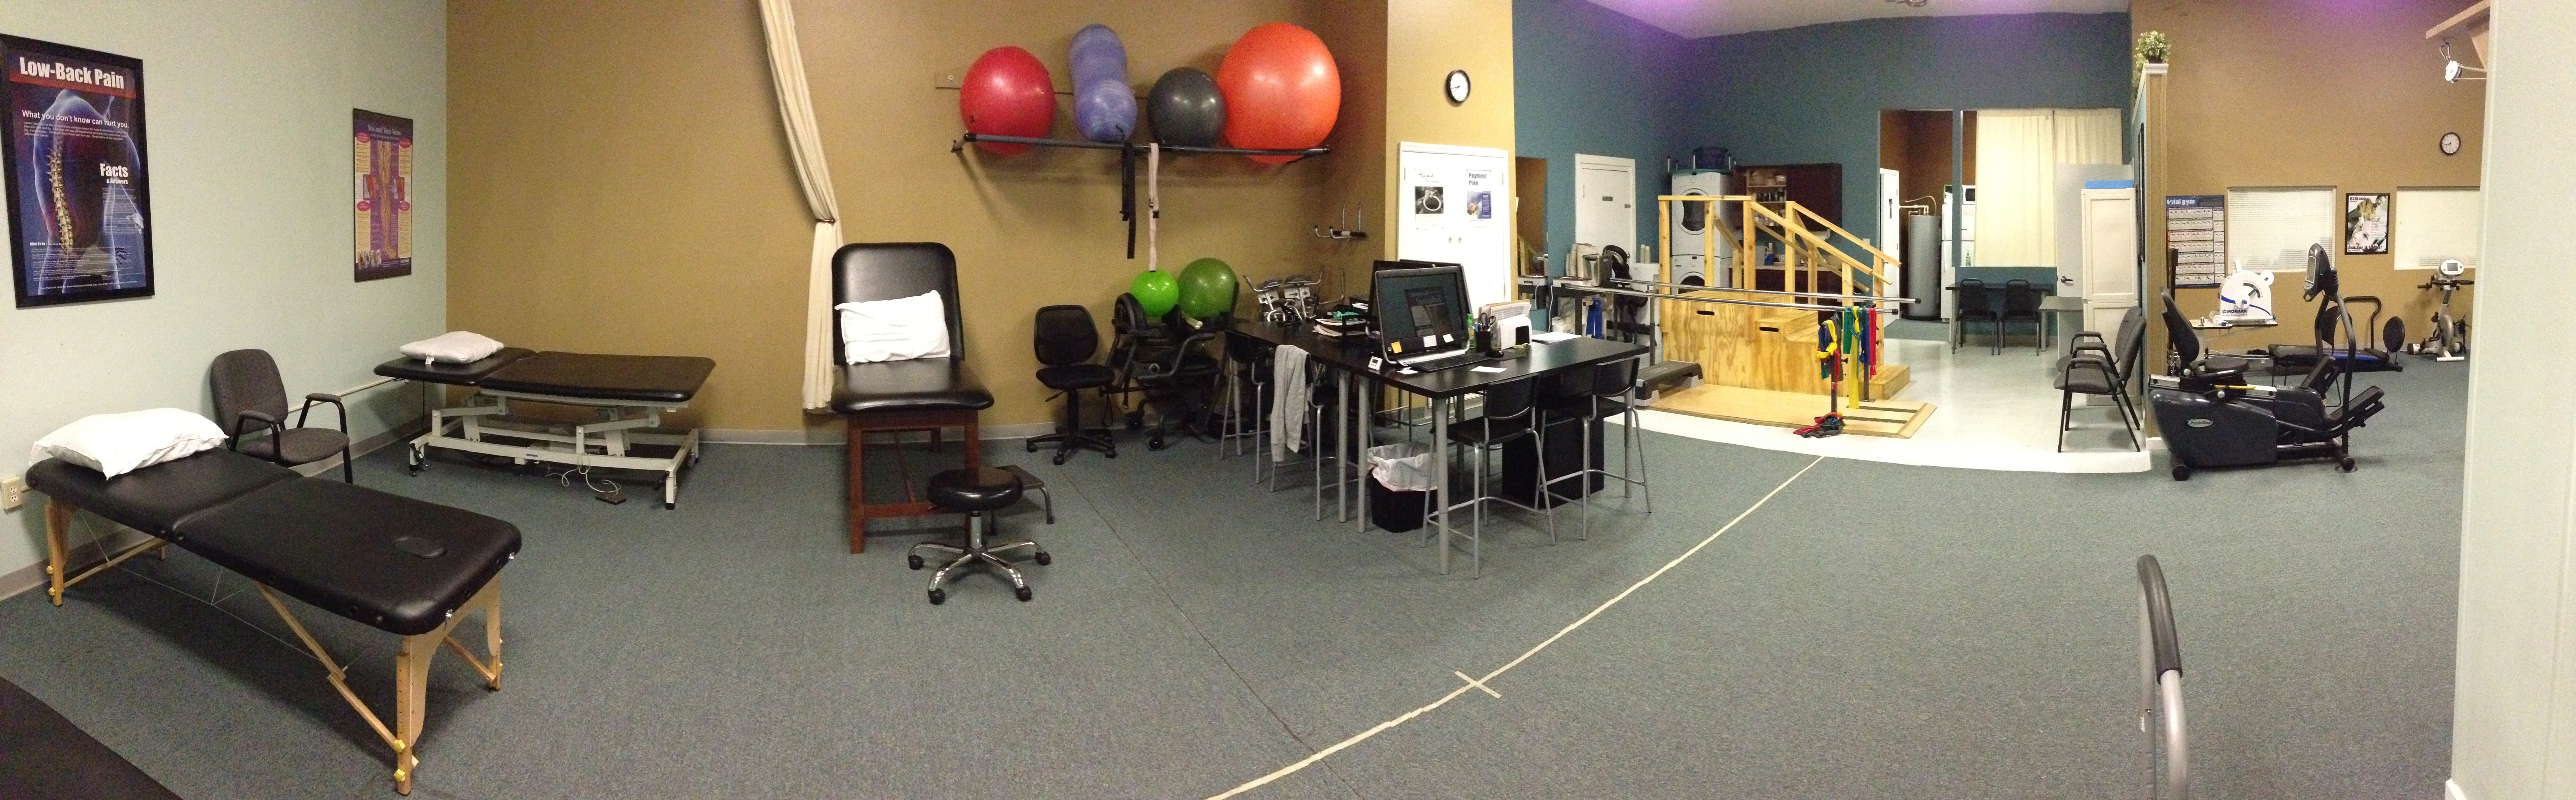 office panorama 1